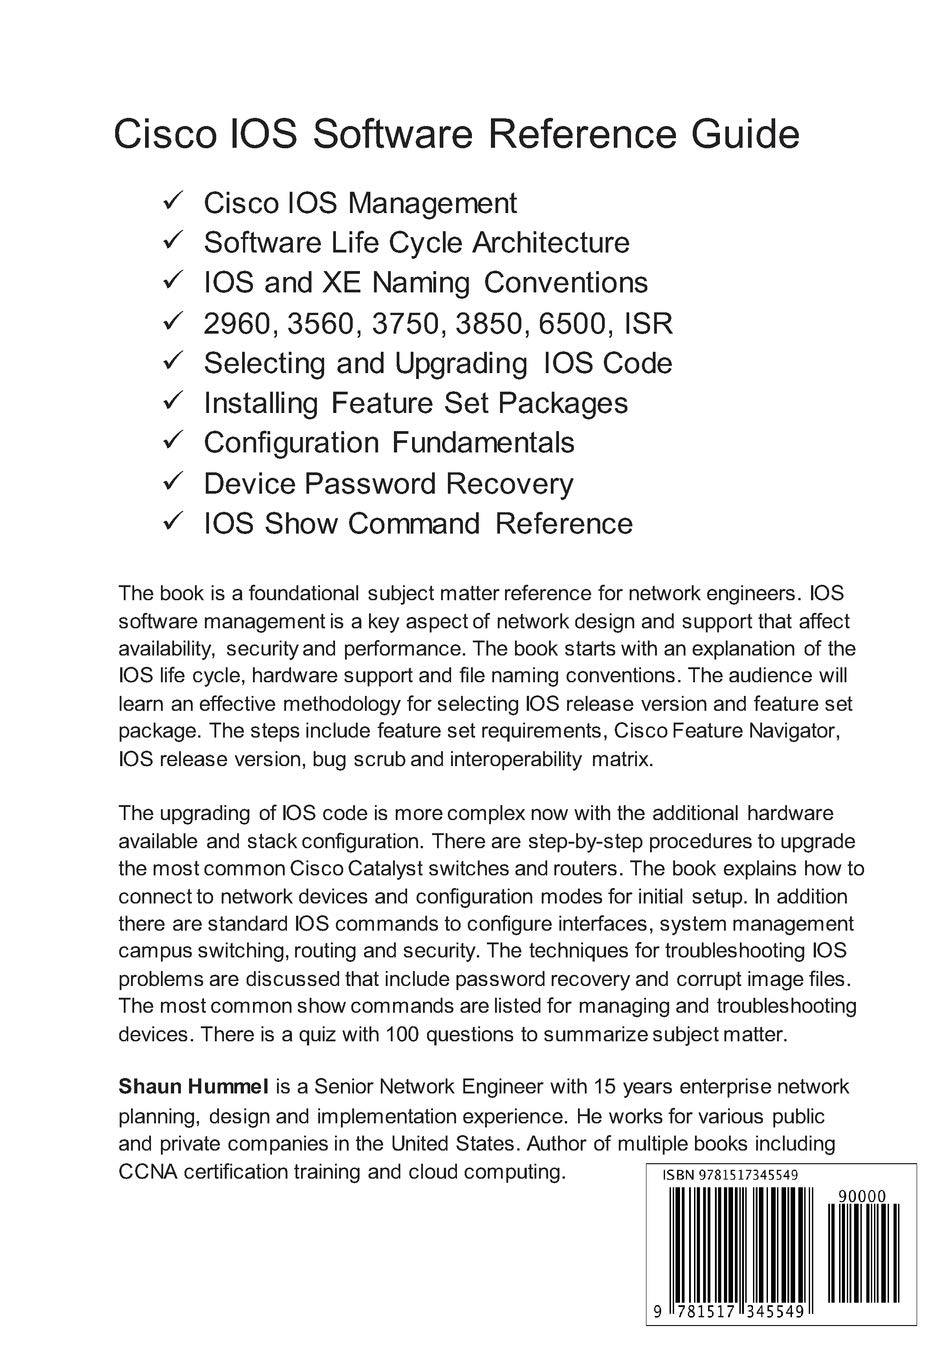 Buy Cisco Ios Software Reference Guide: Install, Upgrade and